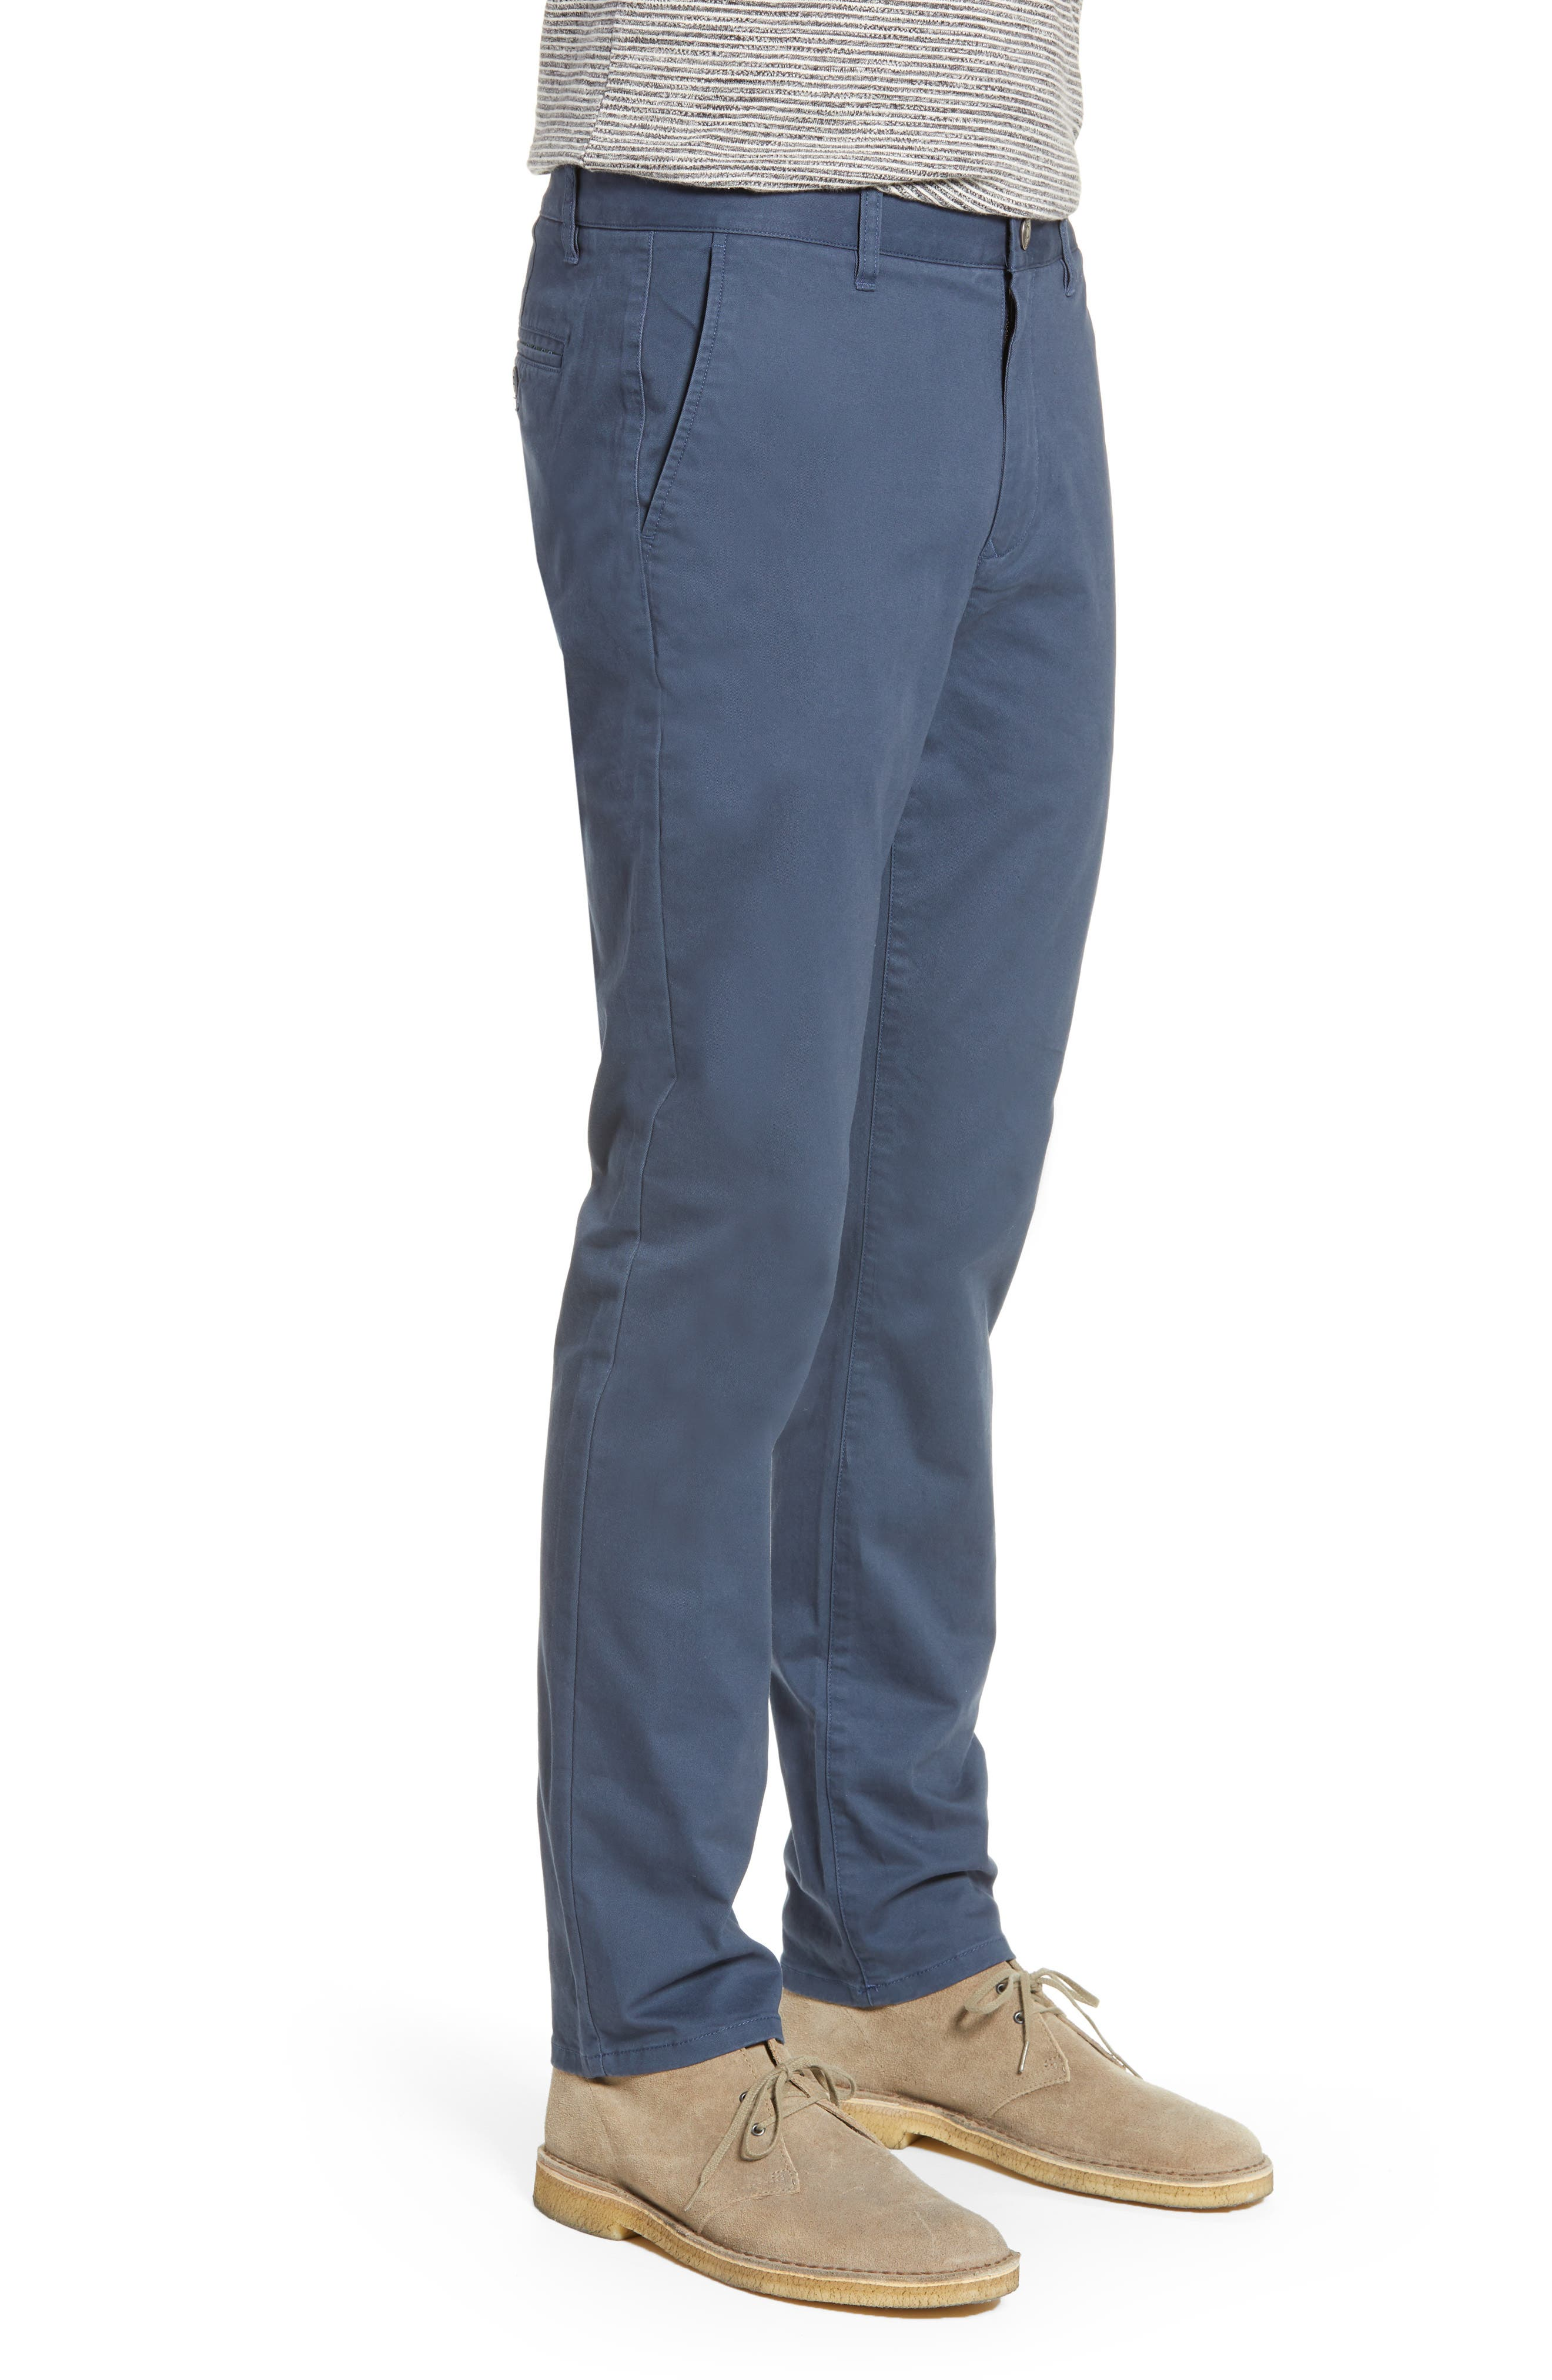 BONOBOS,                             Tailored Fit Washed Stretch Cotton Chinos,                             Alternate thumbnail 3, color,                             STEELY